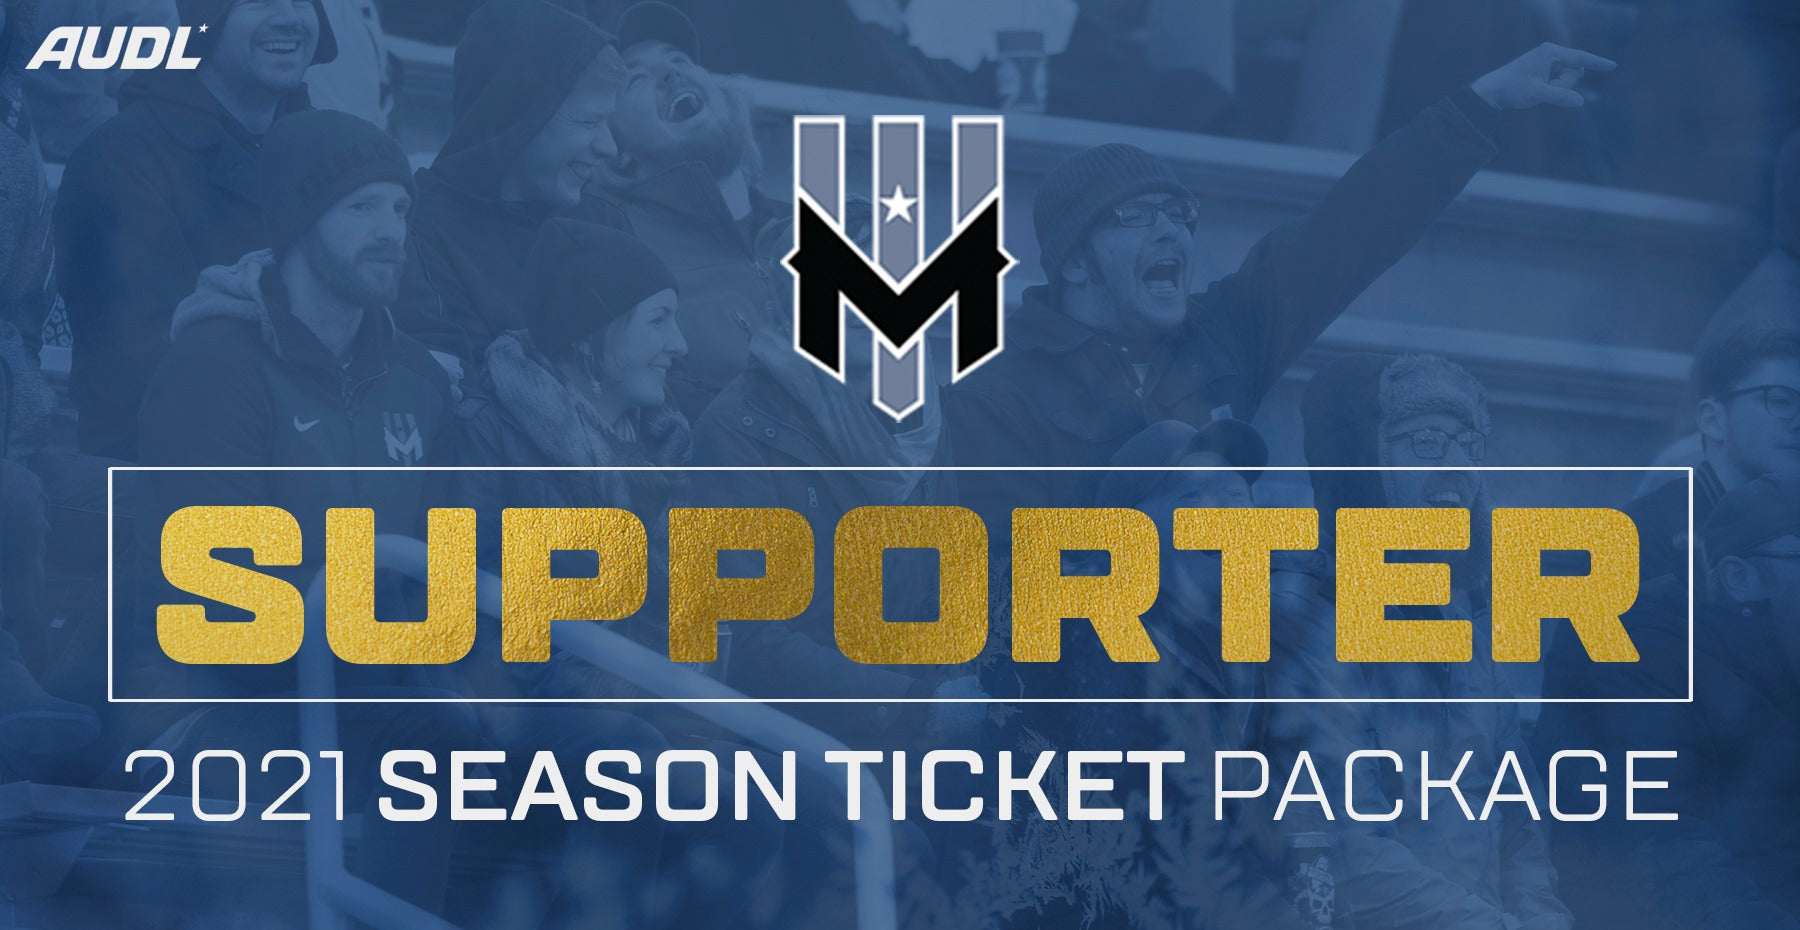 Wind Chill 2021 Season Ticket Package - Wind Chill Supporter